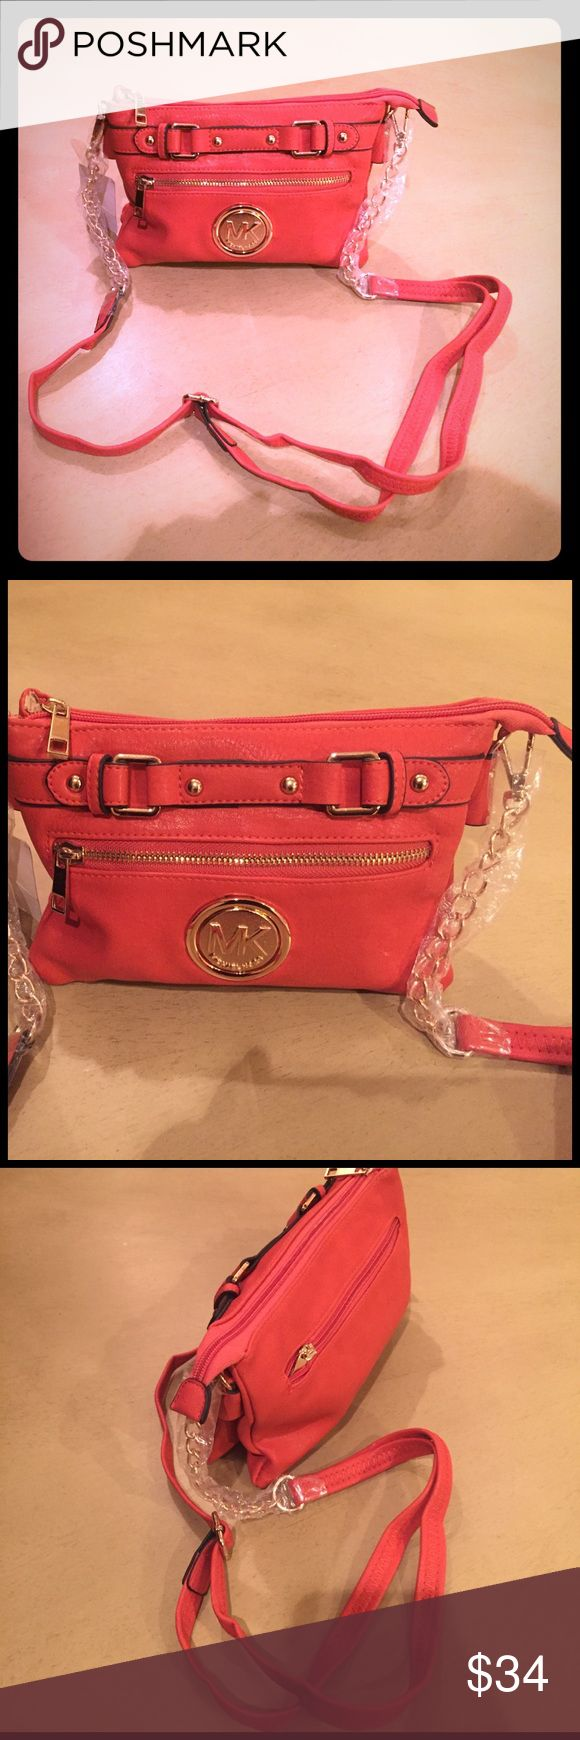 Michael kors Handbag orange This is brand new Michael kors replica Handbag orange for fraction of cost. Get ready for the spring if you want to carry something light weight to school, work or travel. KORS Michael Kors Bags Crossbody Bags